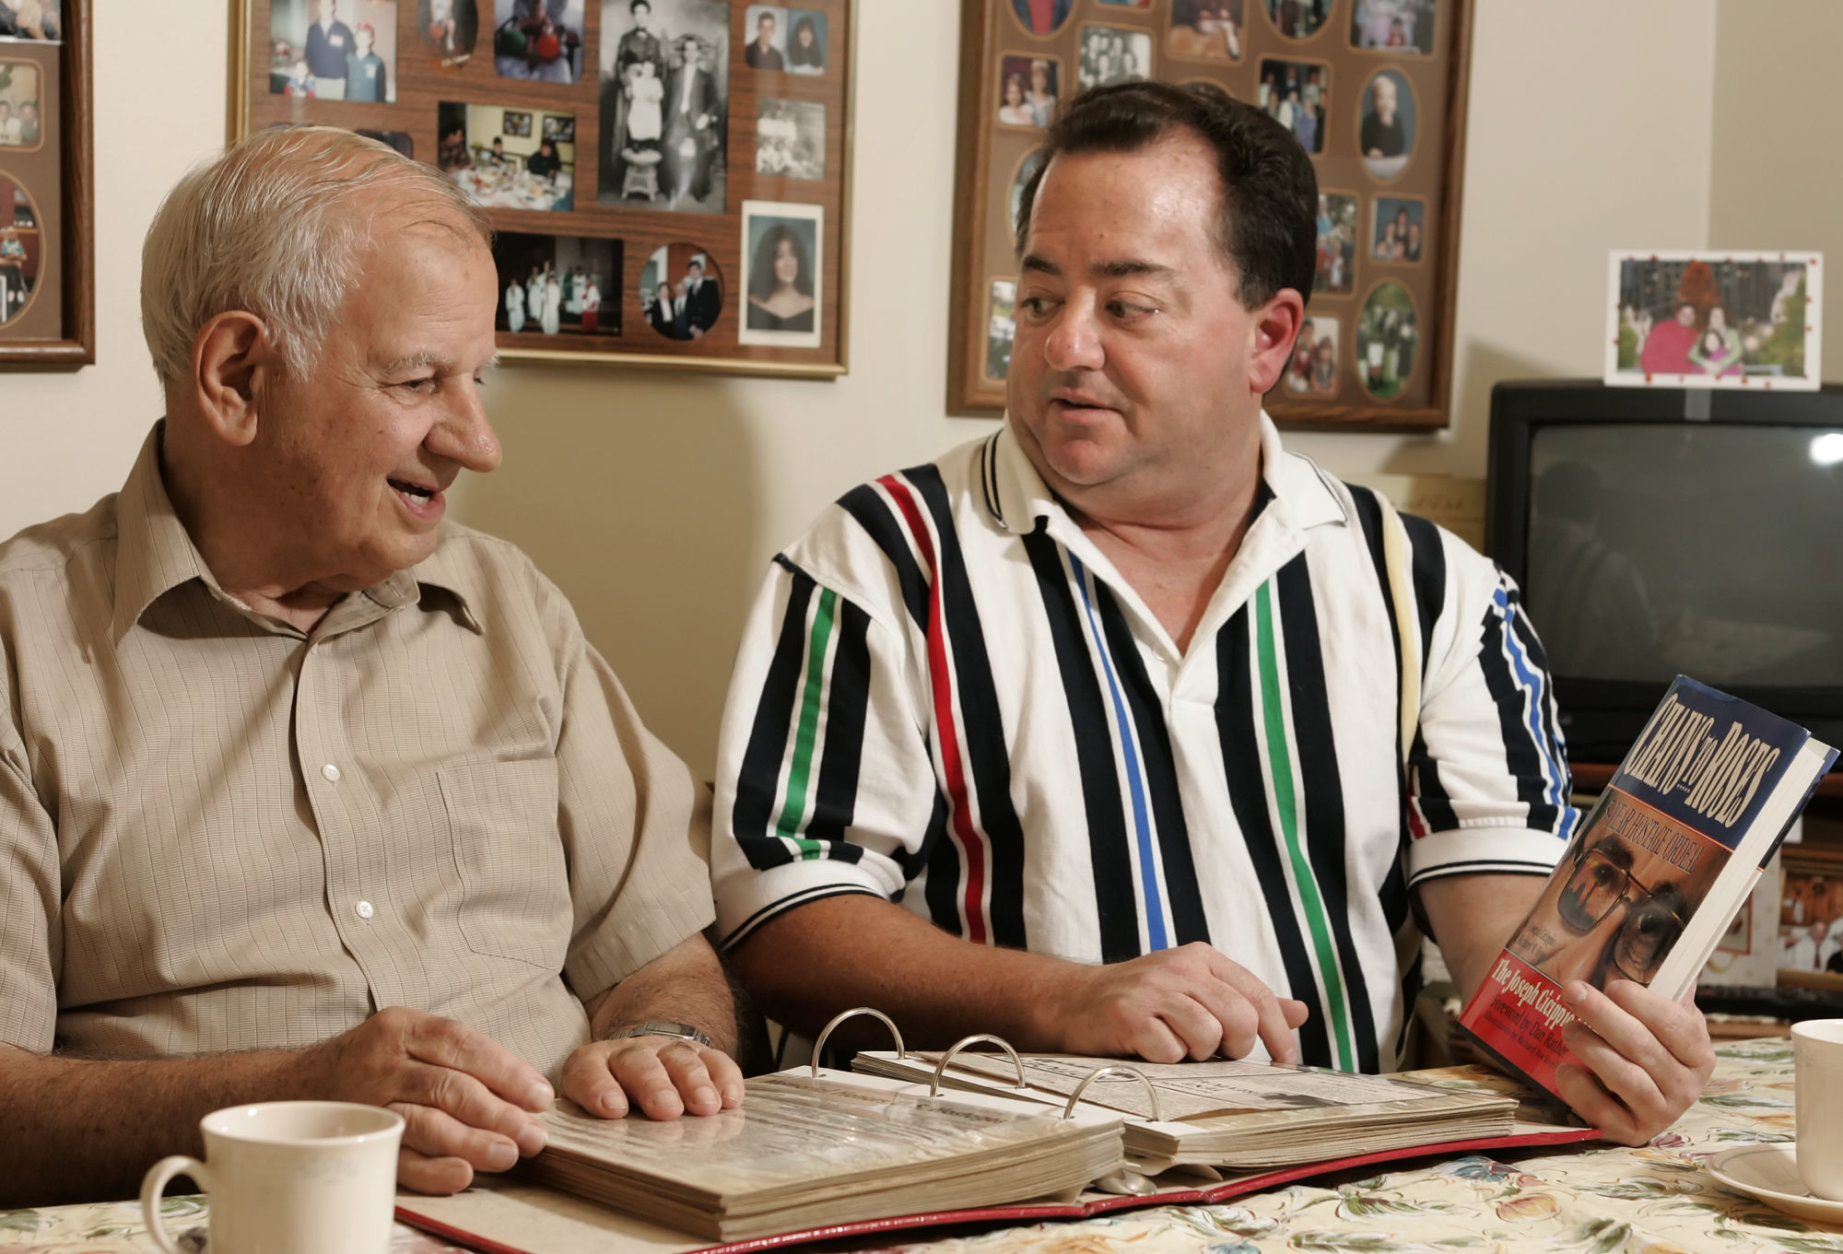 Thomas Cicippio, left, brother of Joseph Cicippio, and David Cicippio, Joseph's son, sit in Thomas' Norristown, Pa., home Wednesday, Oct. 12, 2005. The two are among the relatives of Joseph Cicippio, a former U.S. hostage held in Lebanon, who were awarded $91 million by a U.S. judge for emotional distress in a lawsuit filed against the Islamic Republic of Iran. David Cicippio holds a copy of his father's book, which describes his 1986-1991 captivity. (AP Photo/George Widman)